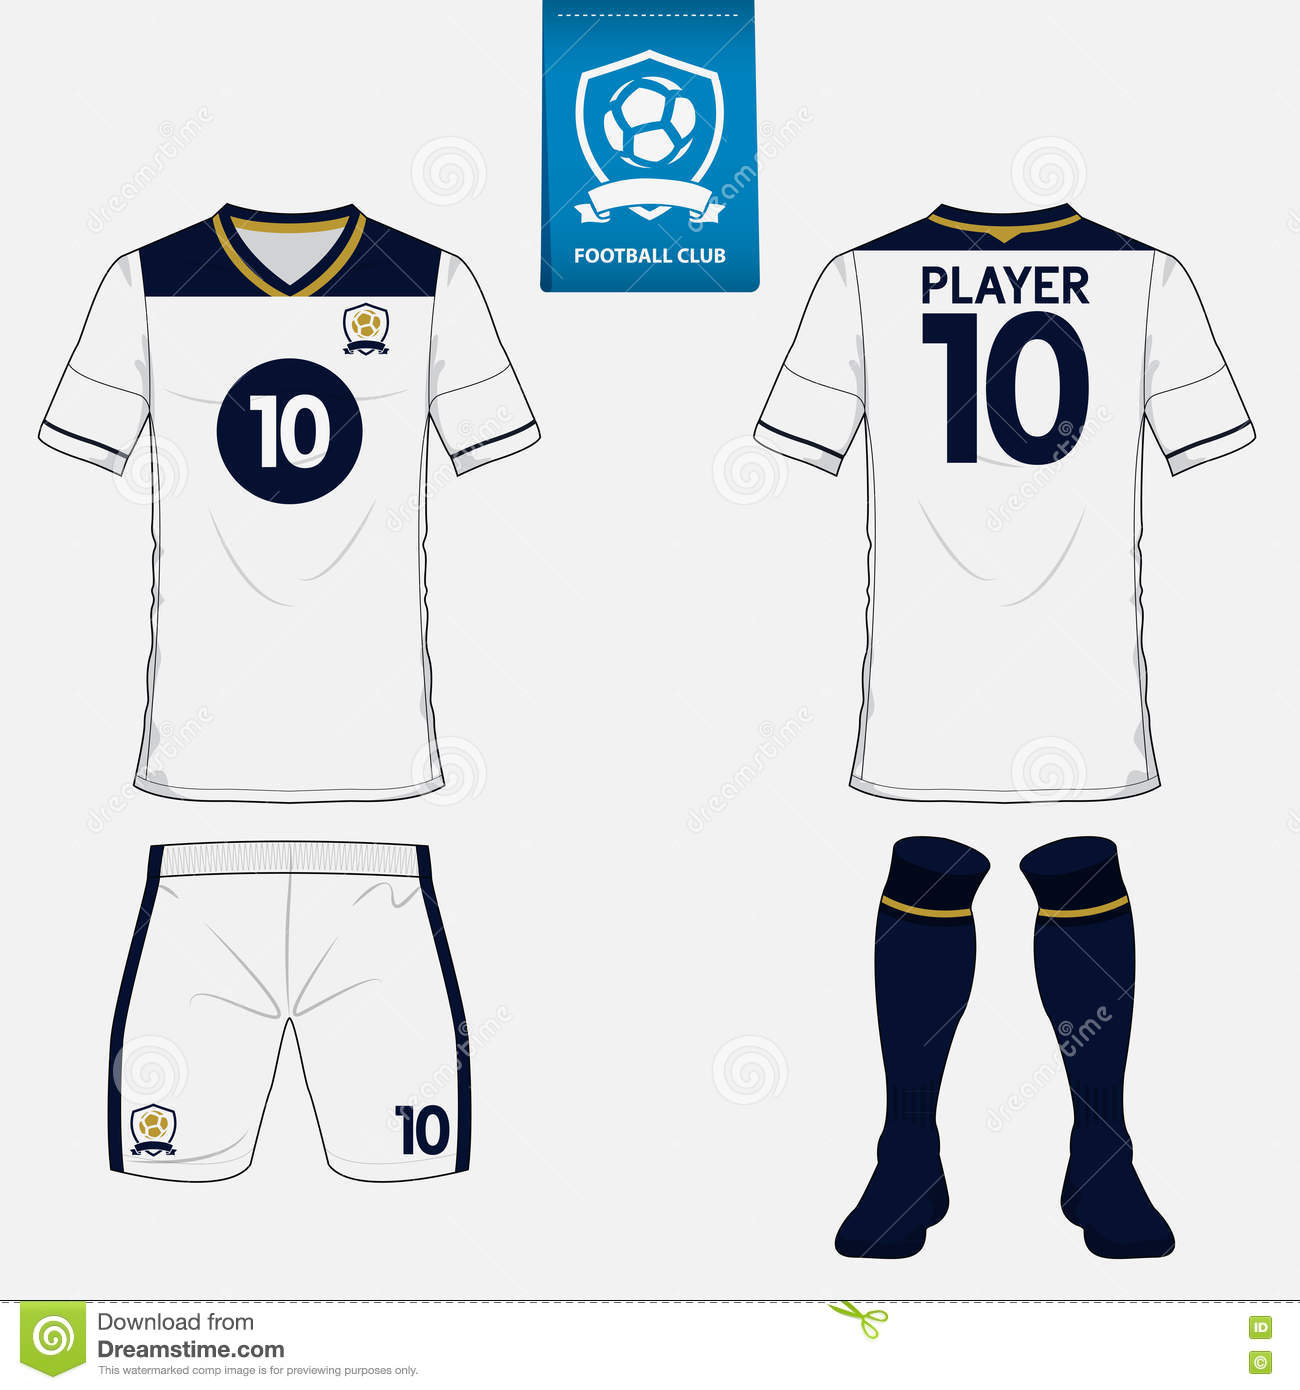 Set of soccer kit or football jersey template for football club. Flat logo  on blue 0224f8b44